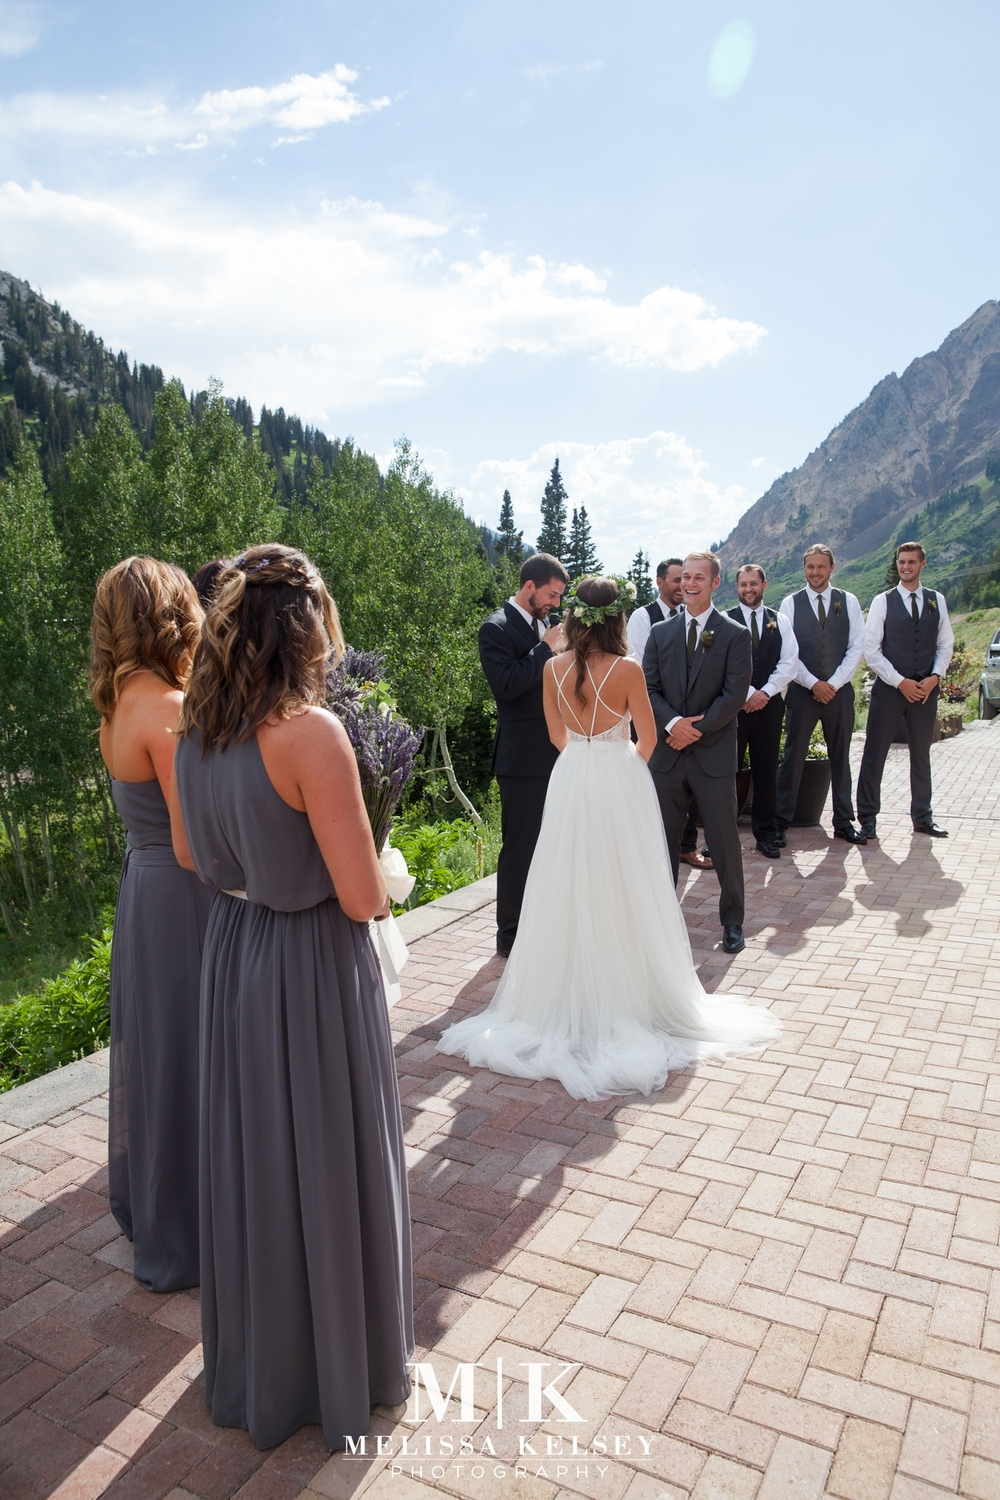 alta-lodge-wedding-21.jpg